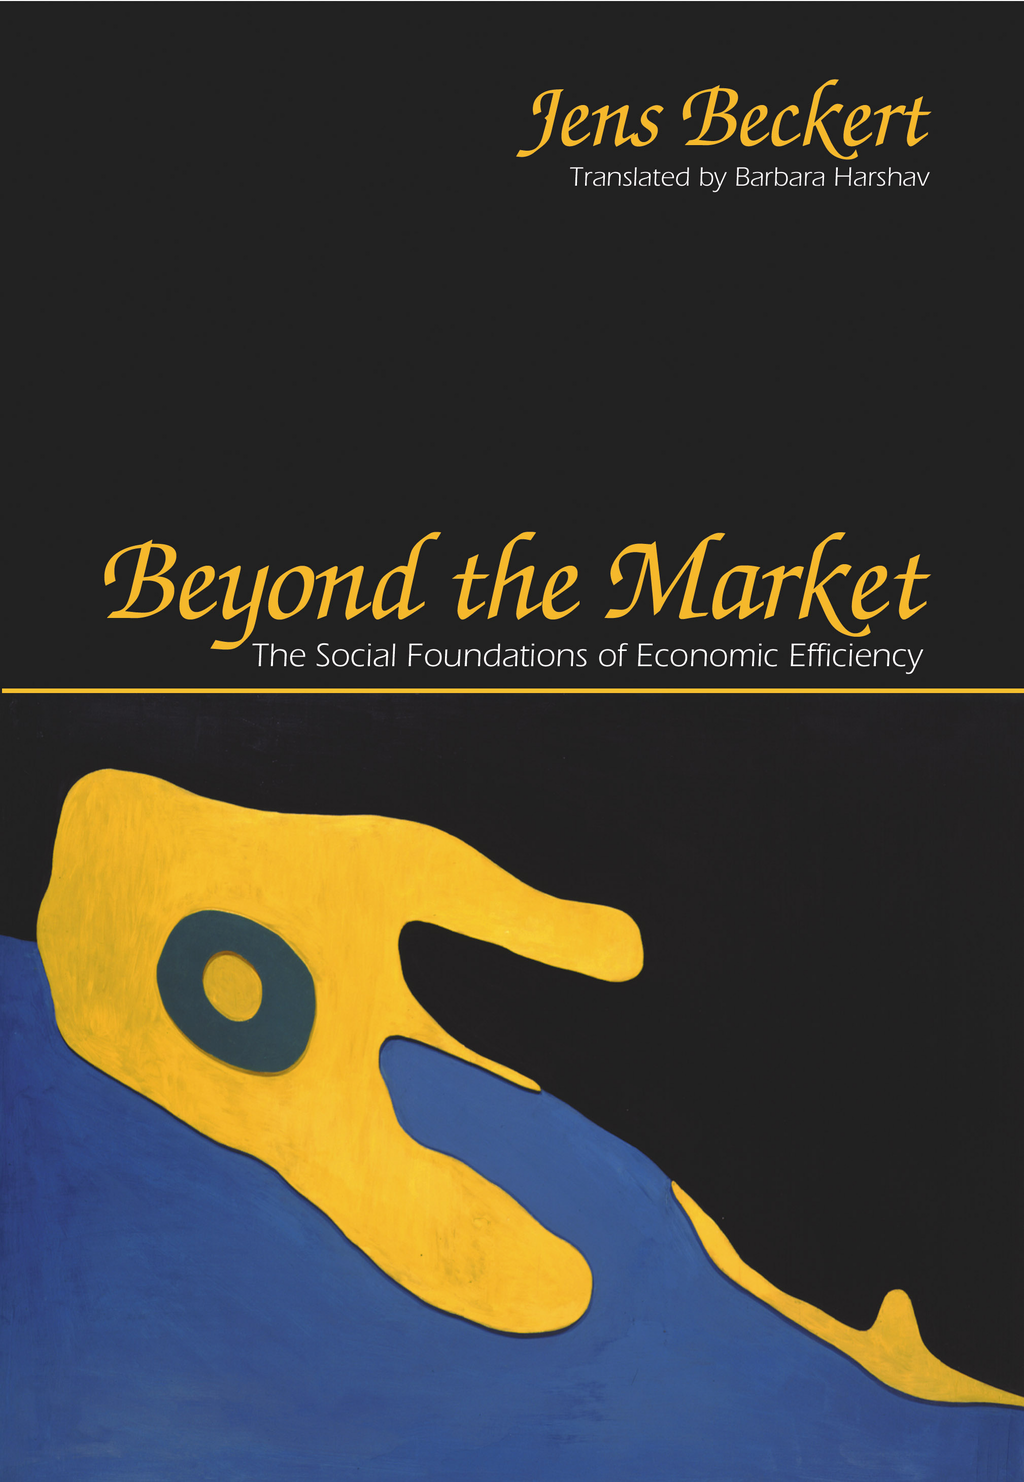 Beyond the Market By: Jens Beckert